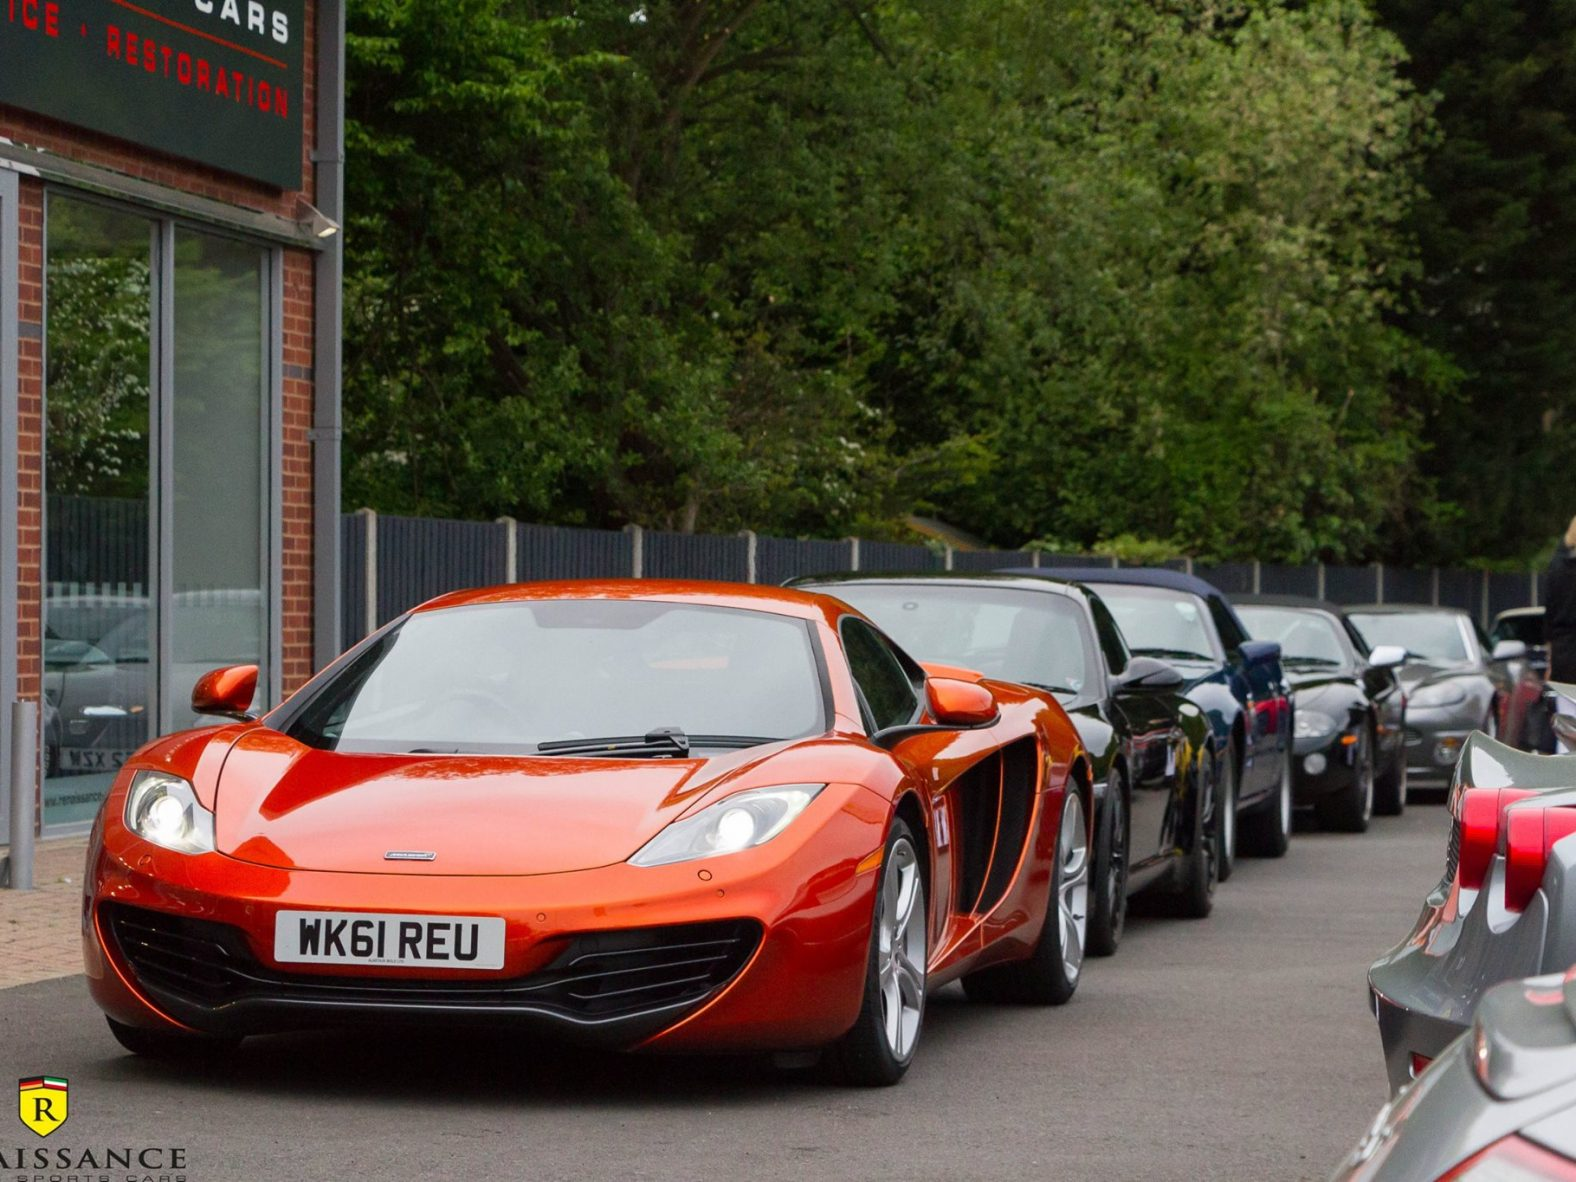 CARS GATHERED TODAY AT HQ FOR THE BRAKE FAST CLUB